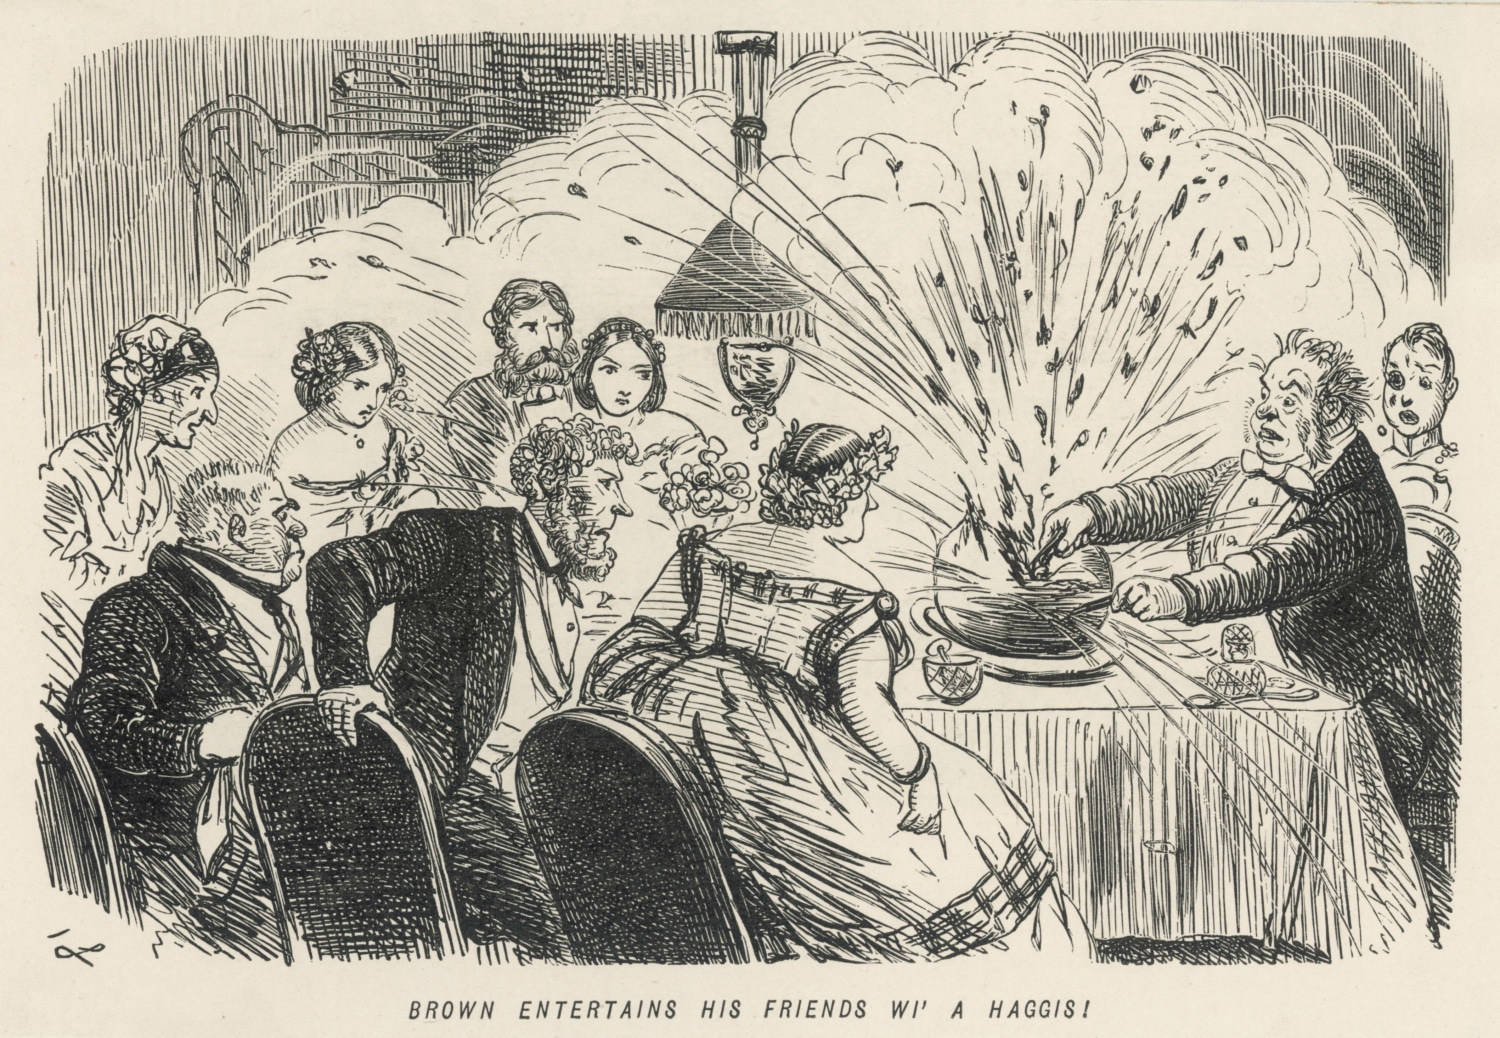 A hstorical drawsing of Haggis being served at a party